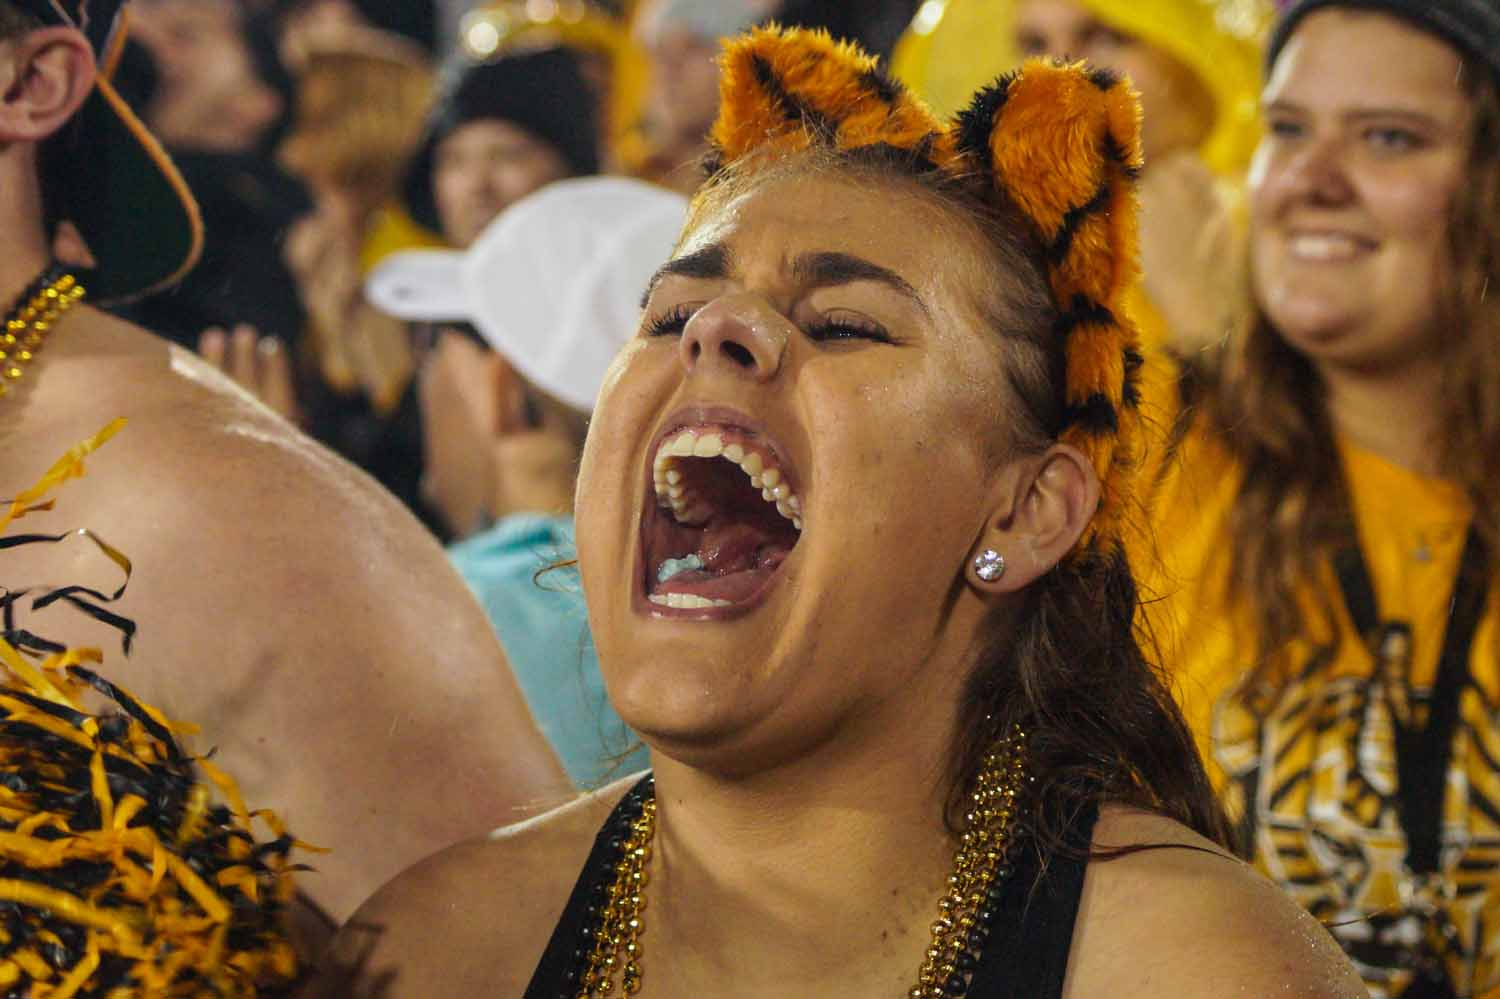 Gretchen Shackelford screams after a successful play by Mizzou's offensive line. Photo by Allison Collins.